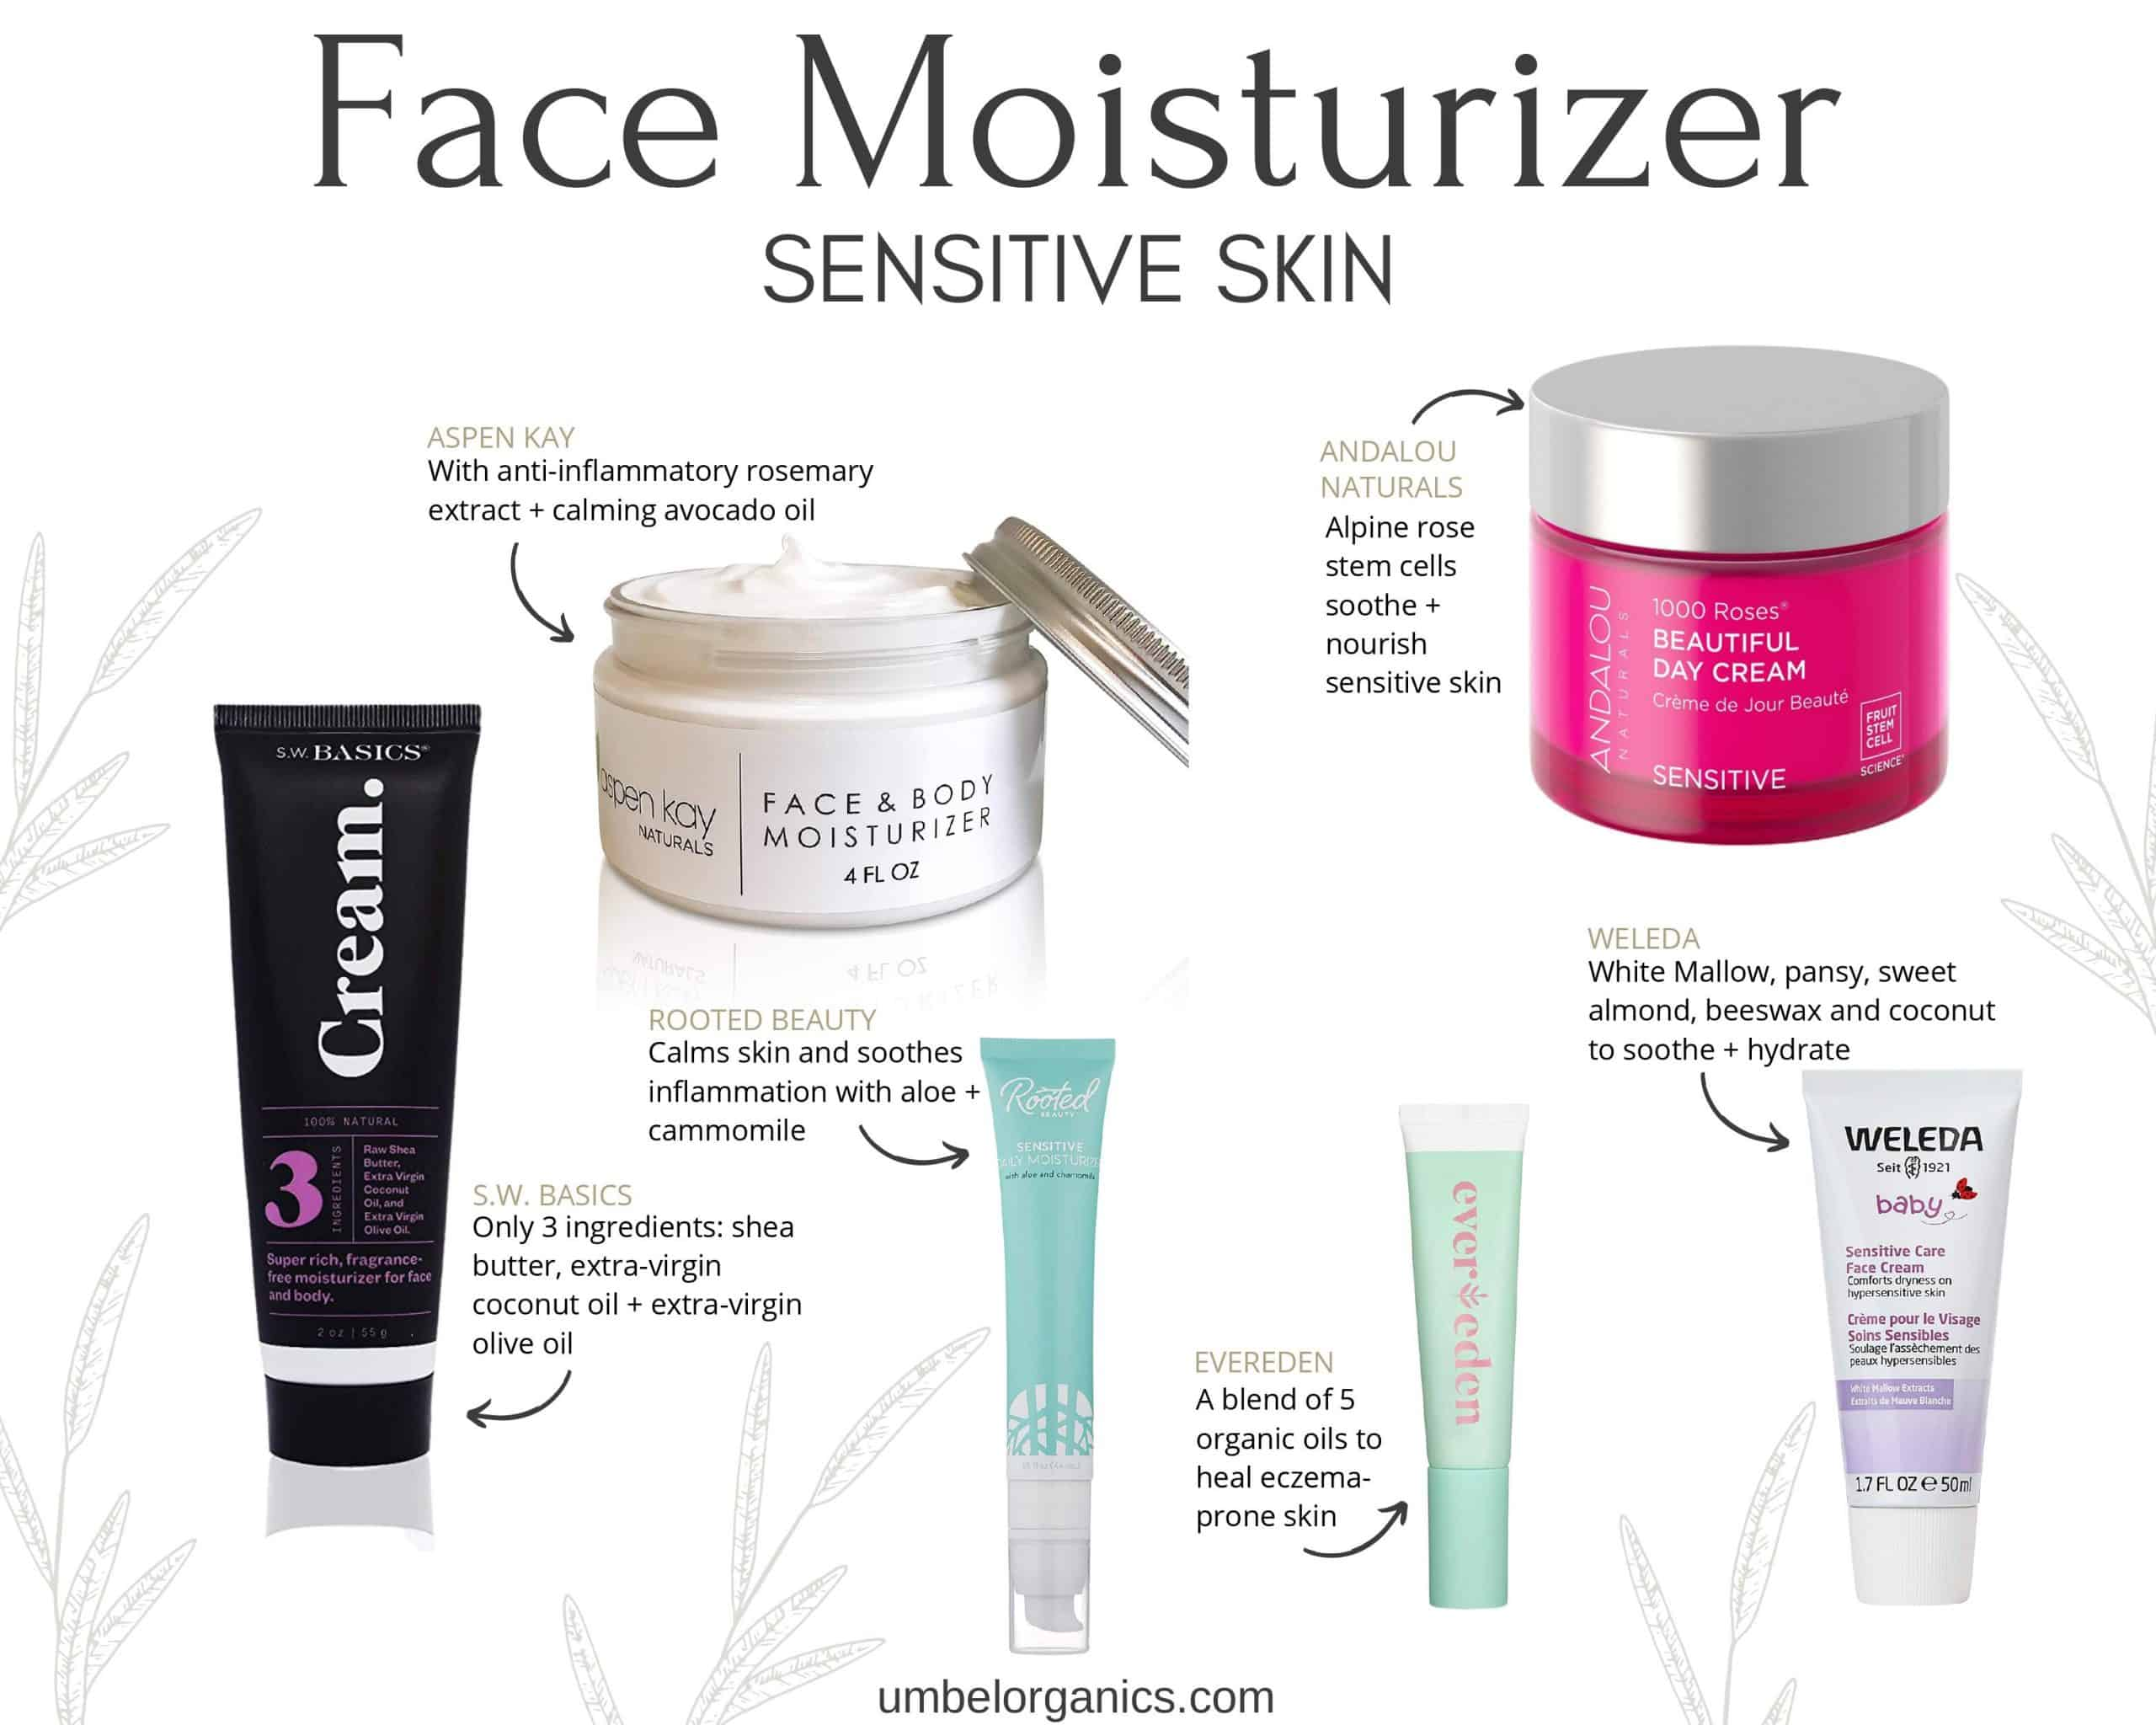 6 brands of clean, sensitive skin, budget-friendly face moisturizer